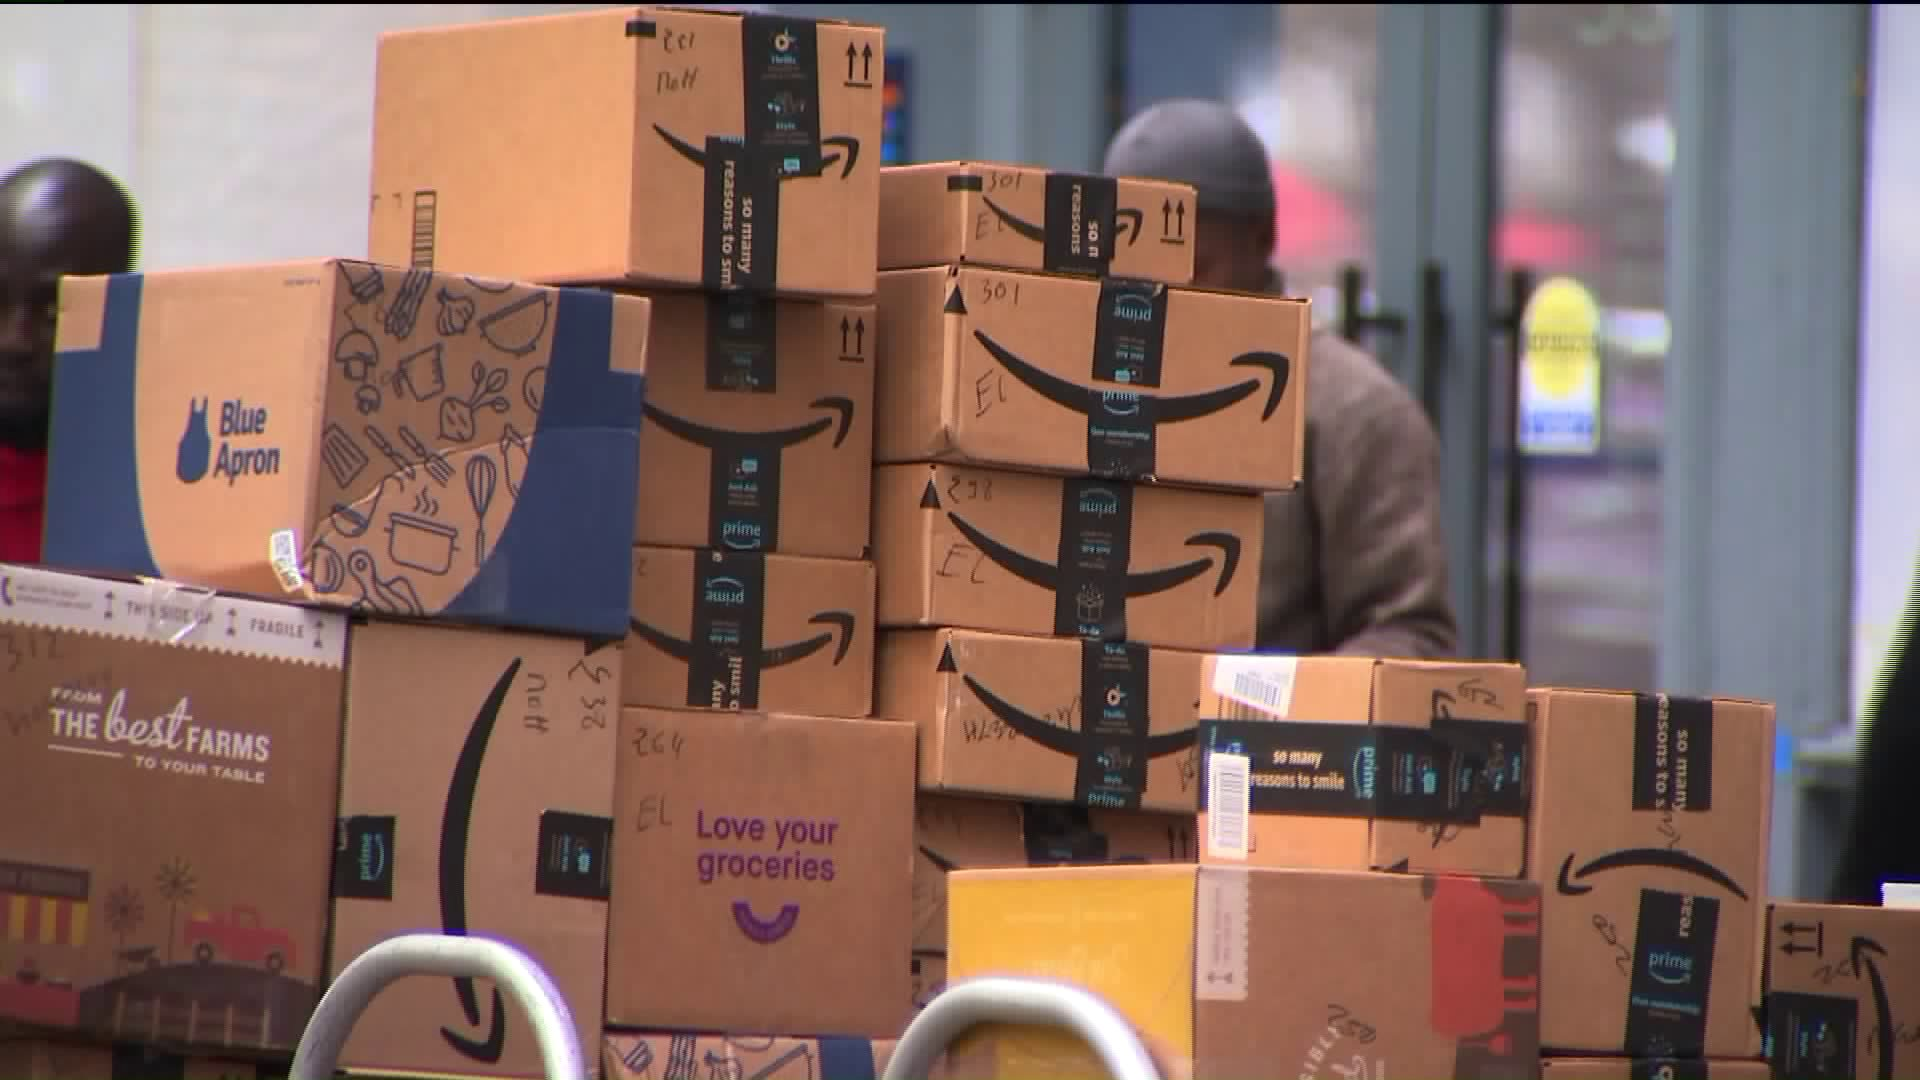 New York sees drawbacks to delivery convenience